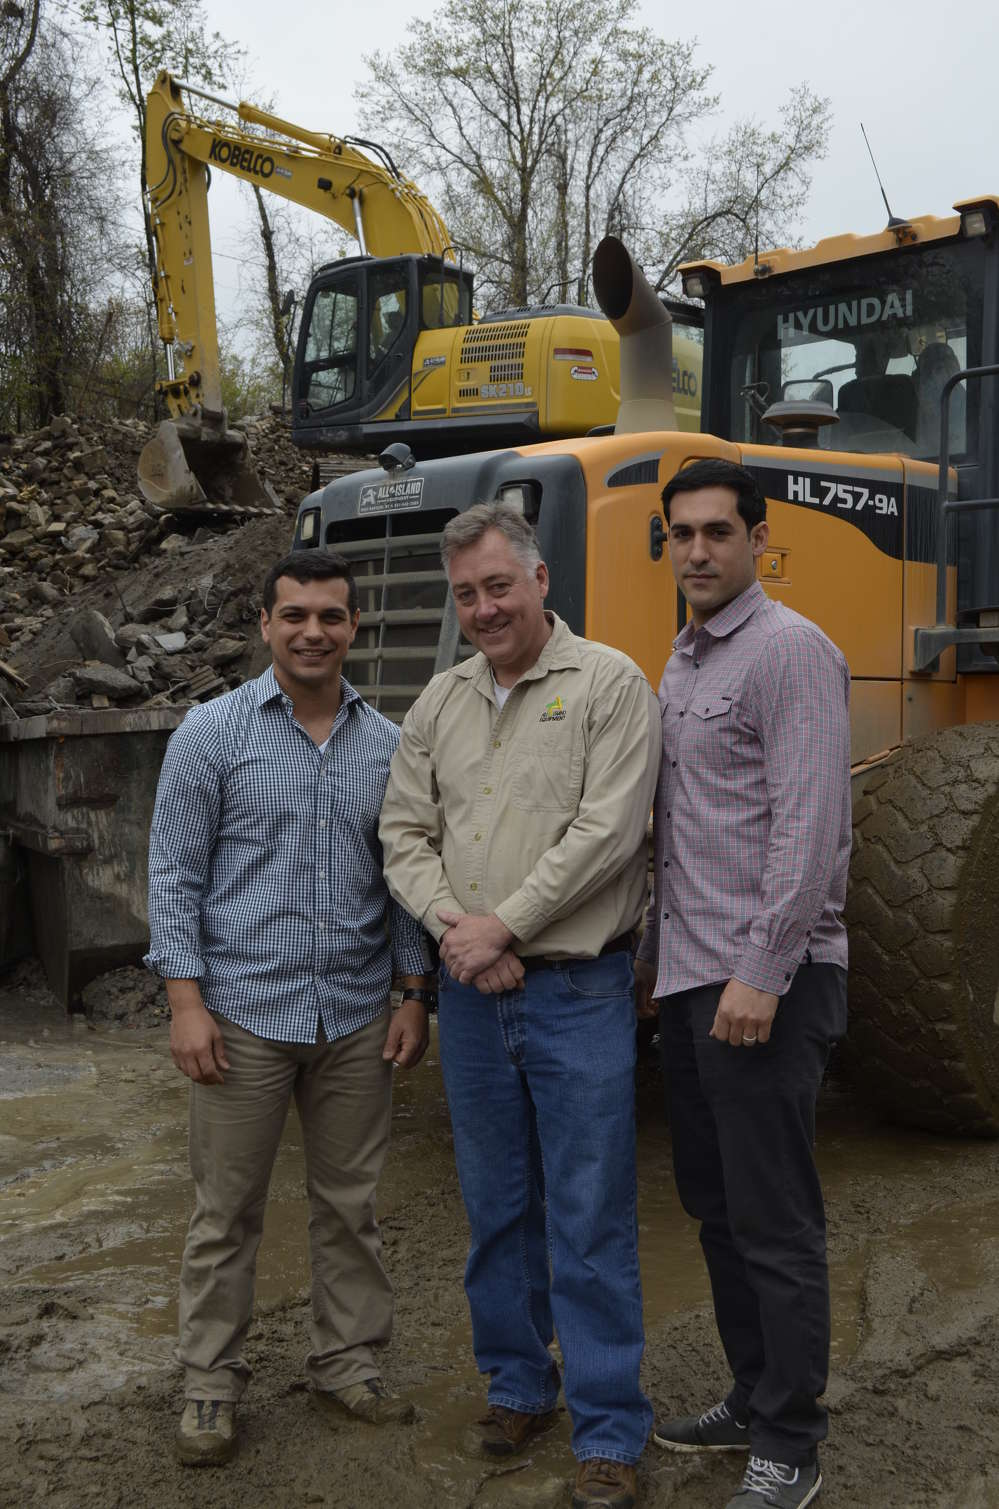 With their recently purchased Hyundai 757-9, (L-R) are Vito Secchiano, partner, Metro Green; Gary Wade, president of All Island Equipment; and Angelo Maiorano, partner, Metro Green.